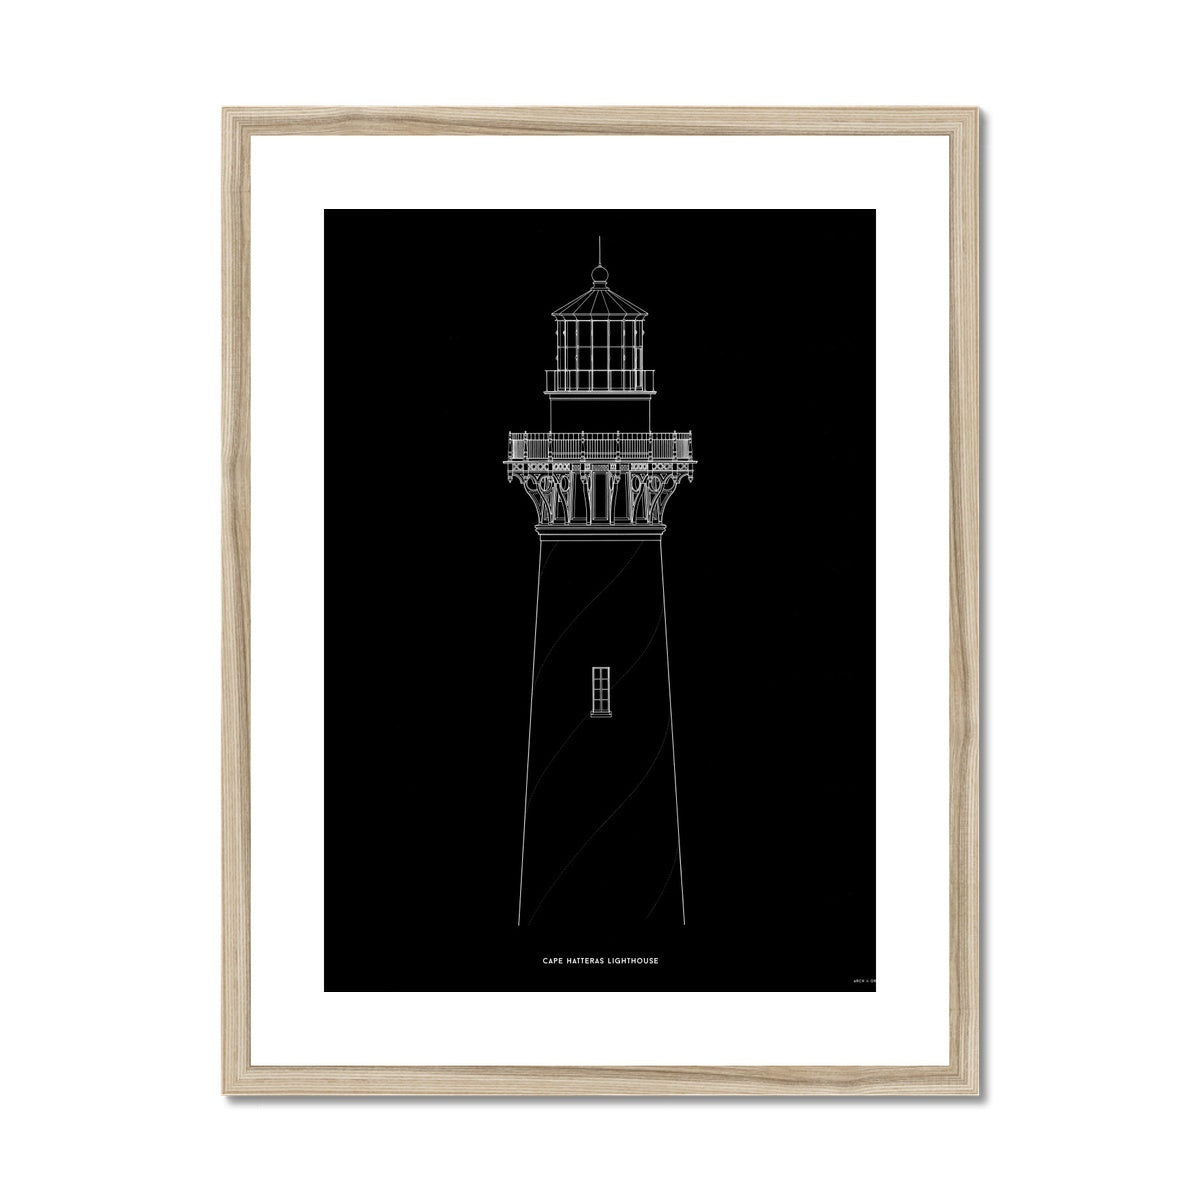 Cape Hatteras Lighthouse - North Elevation Detail - Black -  Framed & Mounted Print